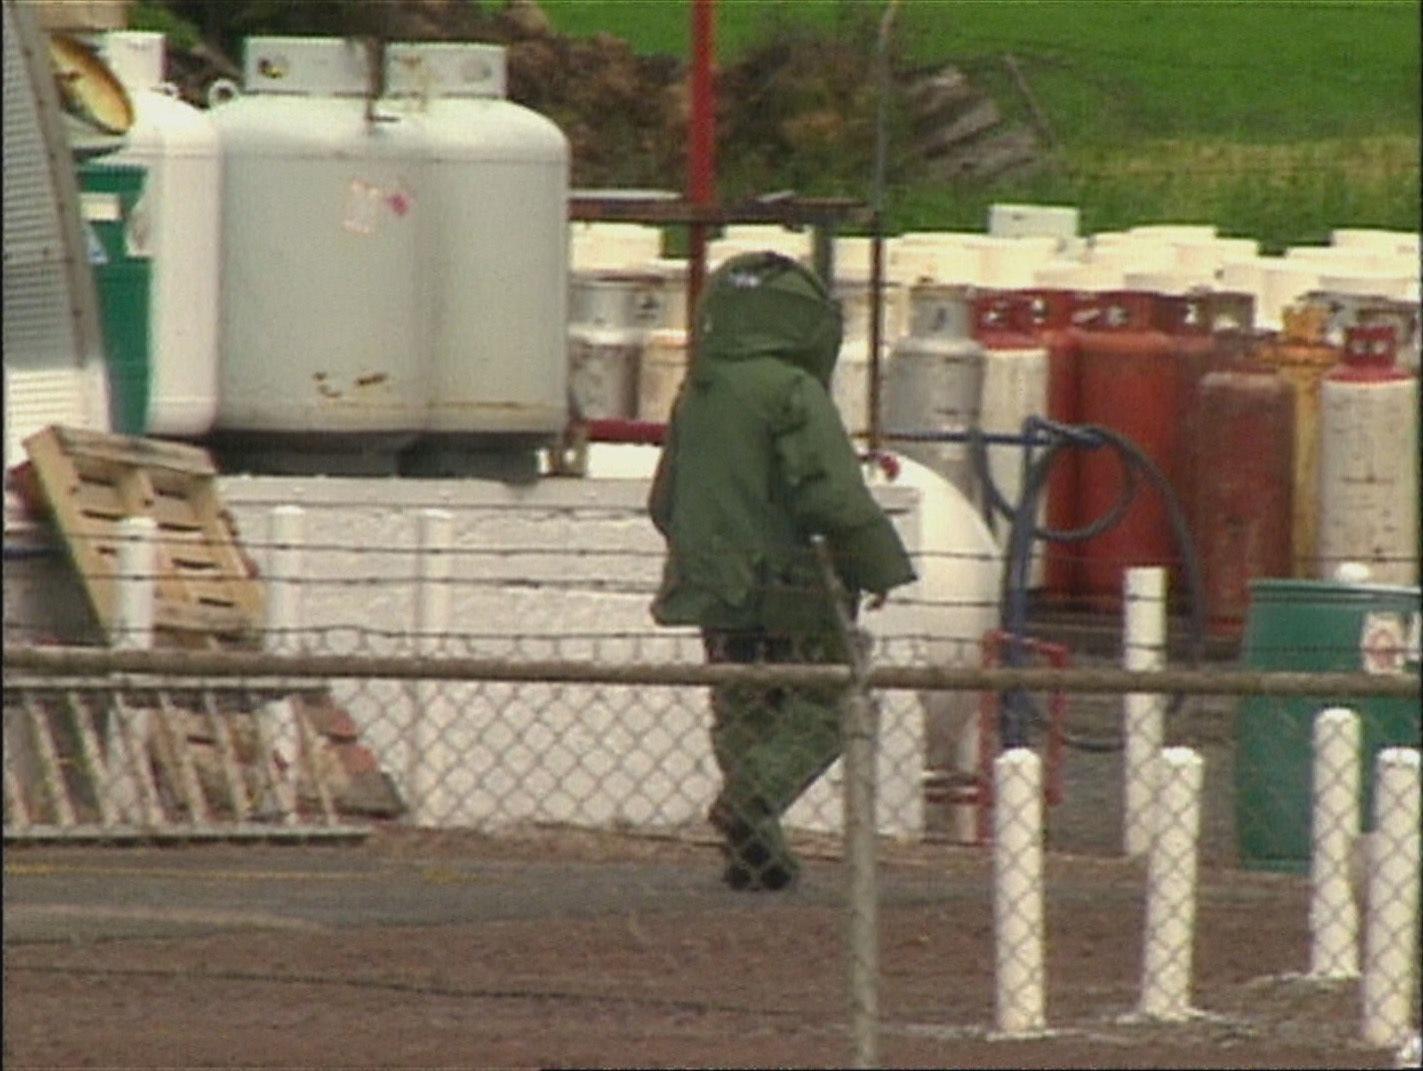 A member of the bomb squad approaches the device at the propane tank station in Charlottetown. (CBC)